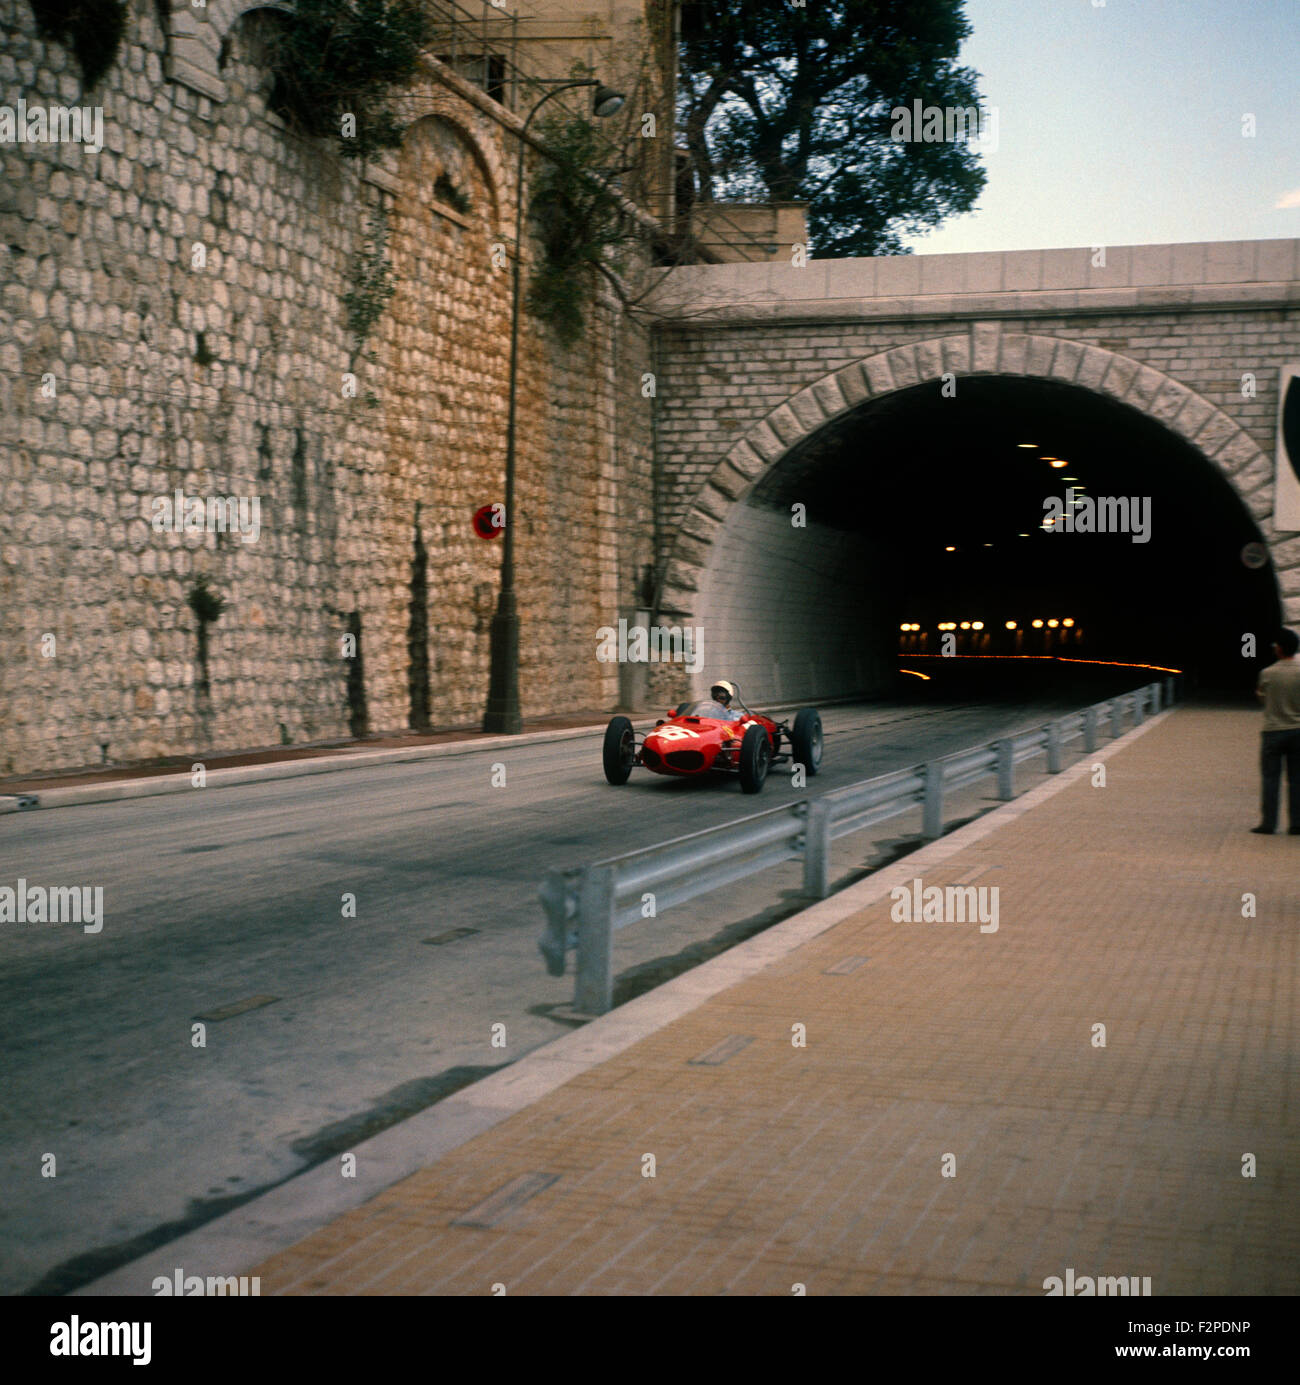 Phil Hill in a Ferrari 156 finished 3rd in the Monaco GP 14 May 1961 - Stock Image